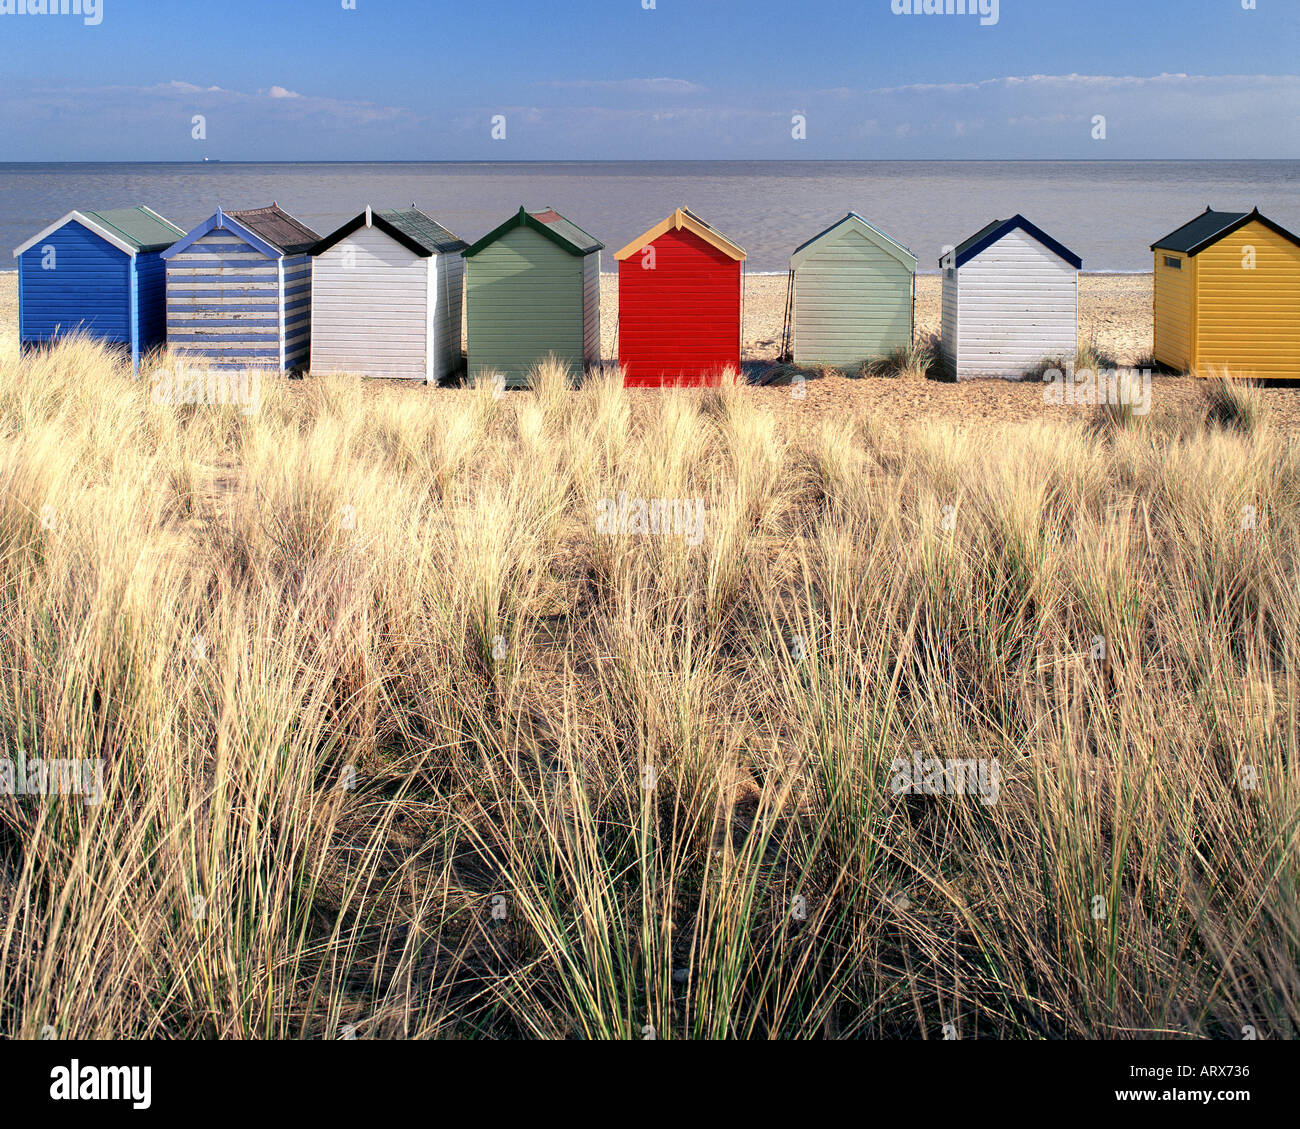 GB - SUFFOLK: Traditional beach huts at Southwold Stock Photo